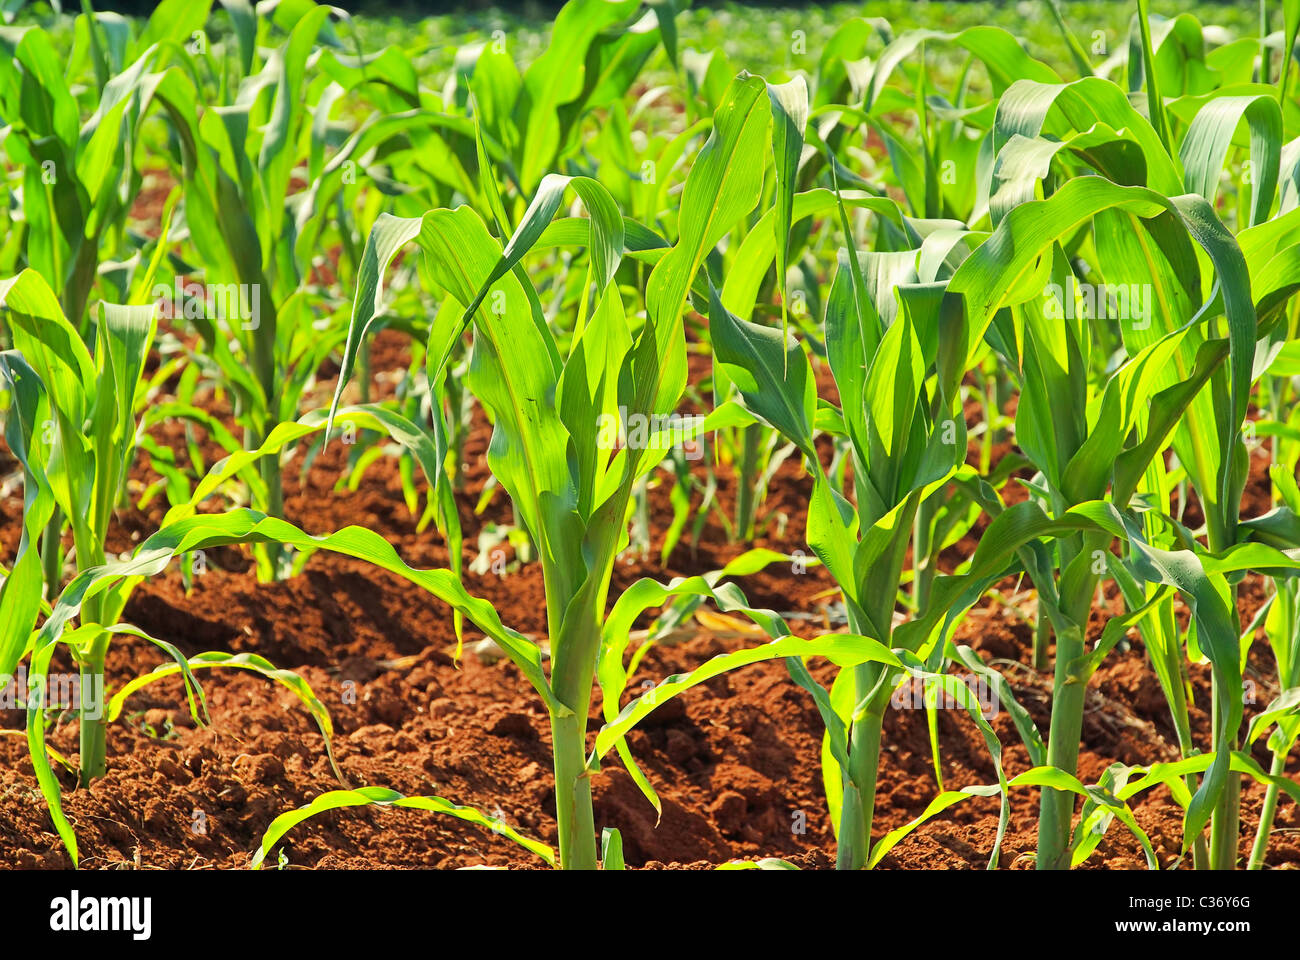 Maisfeld - corn field 07 - Stock Image